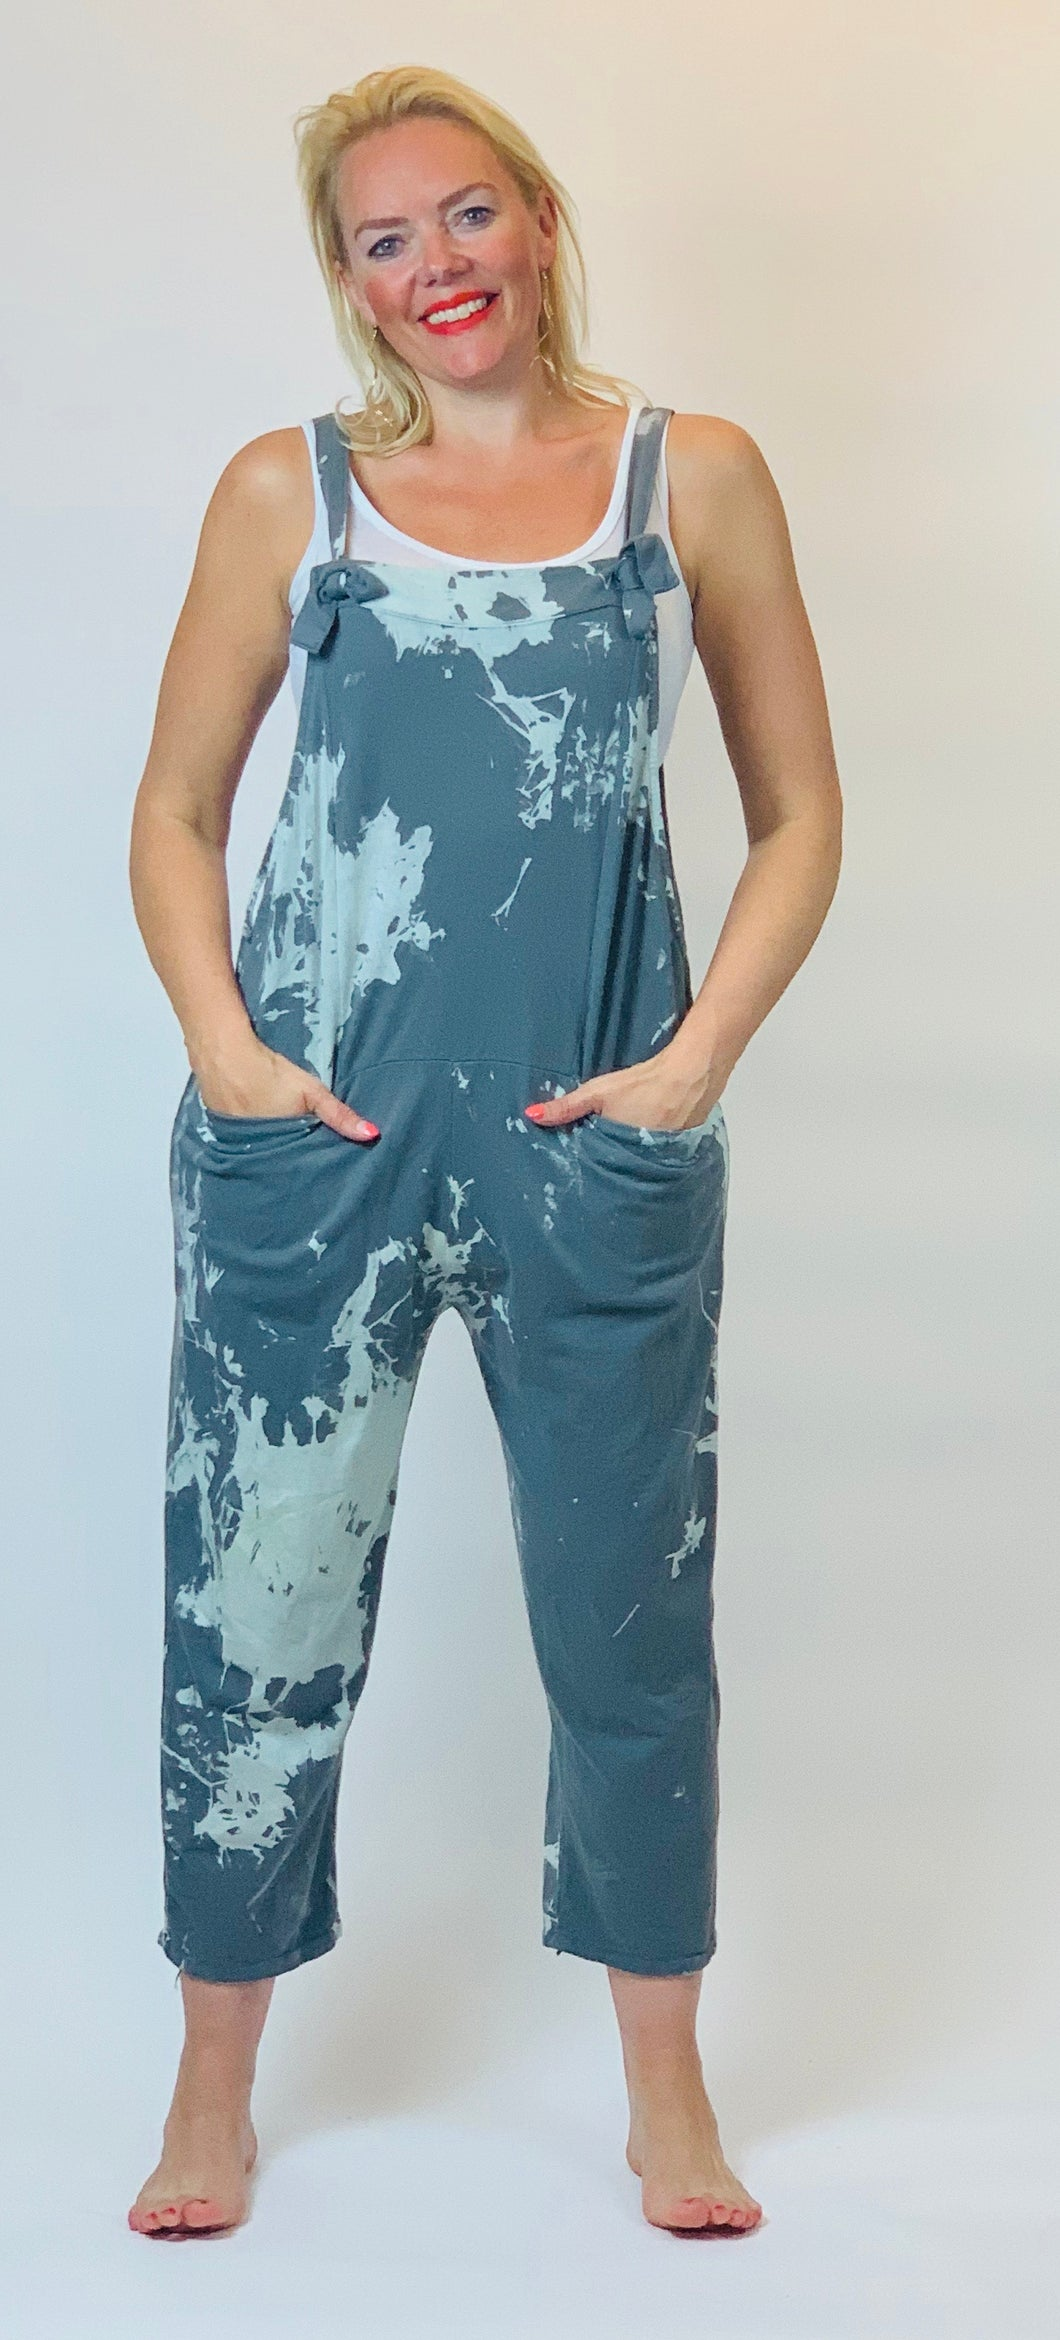 Soft Dungarees in Pollock Print - chichappensboutique